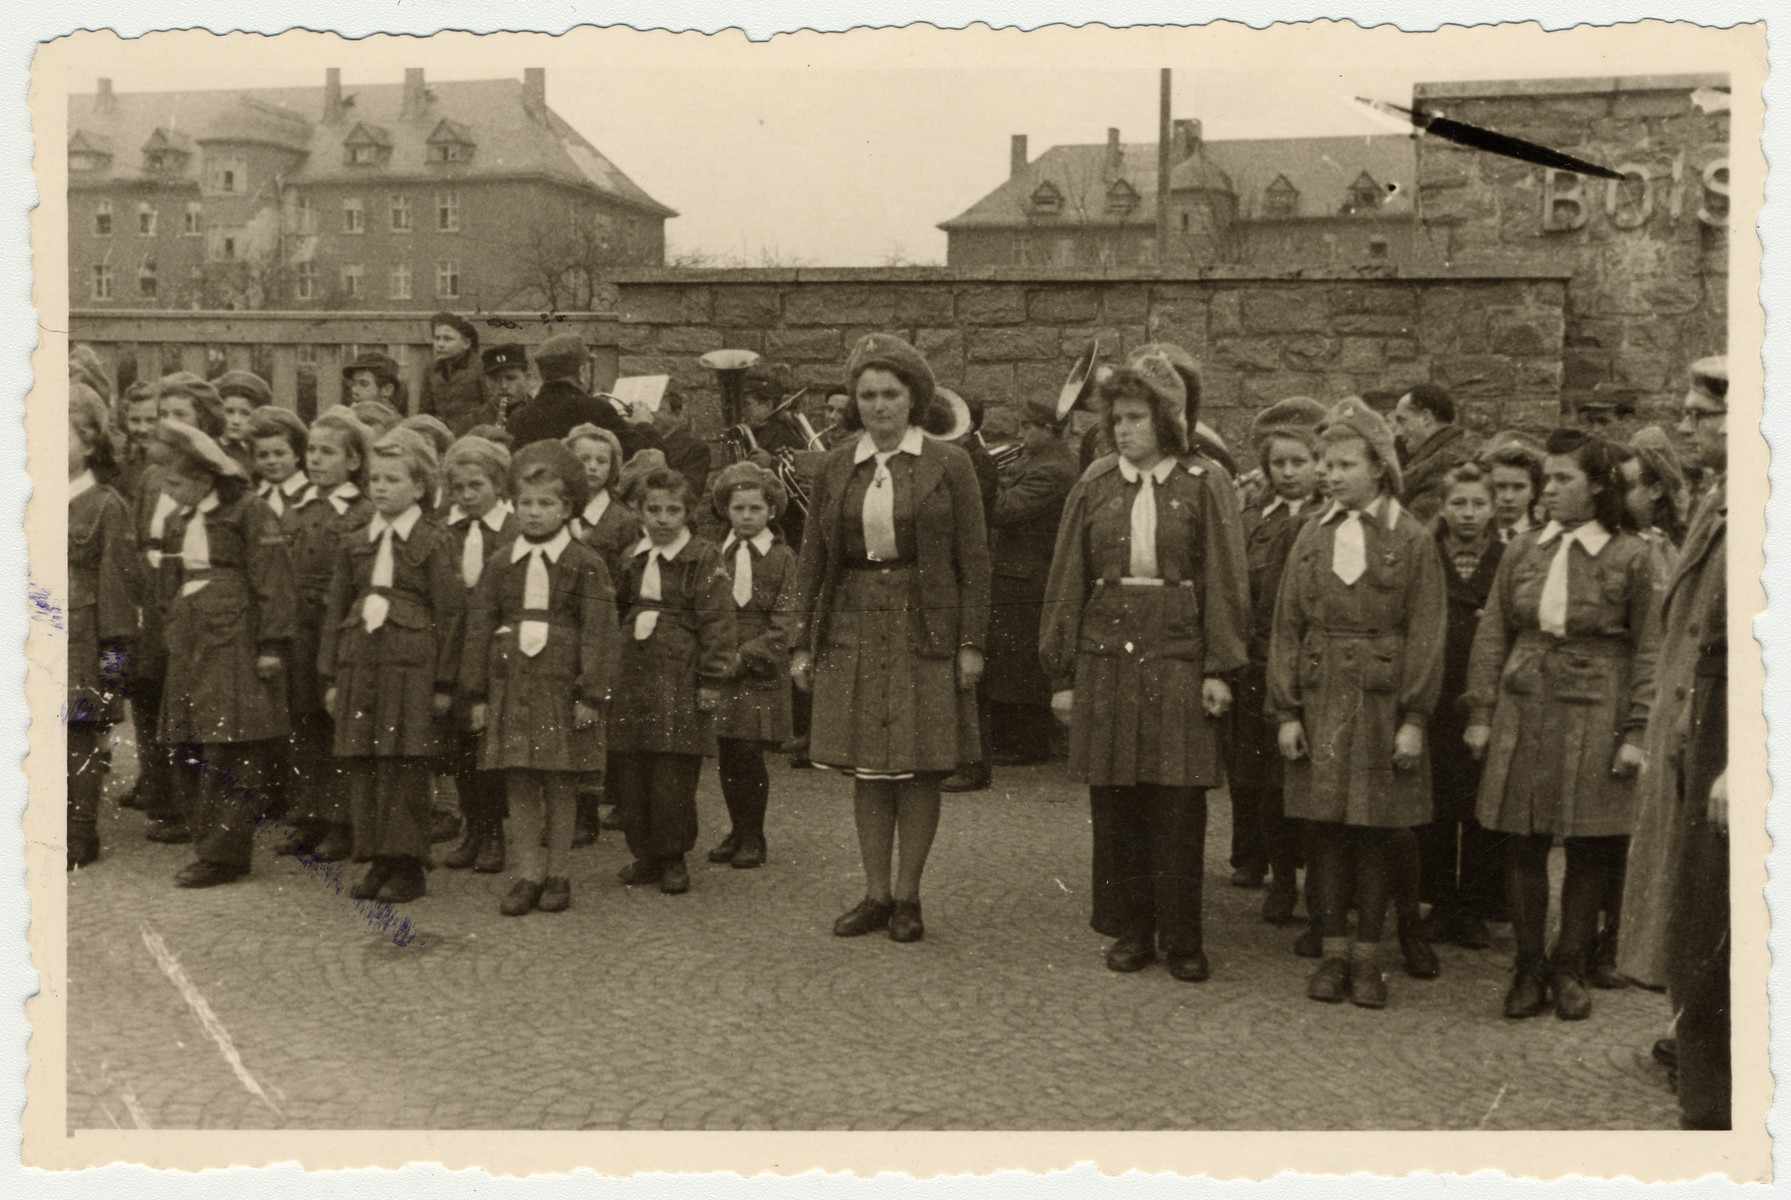 Children in uniform stand at attention in the Aschaffenburg displaced persons' camp while a band plays in the background.